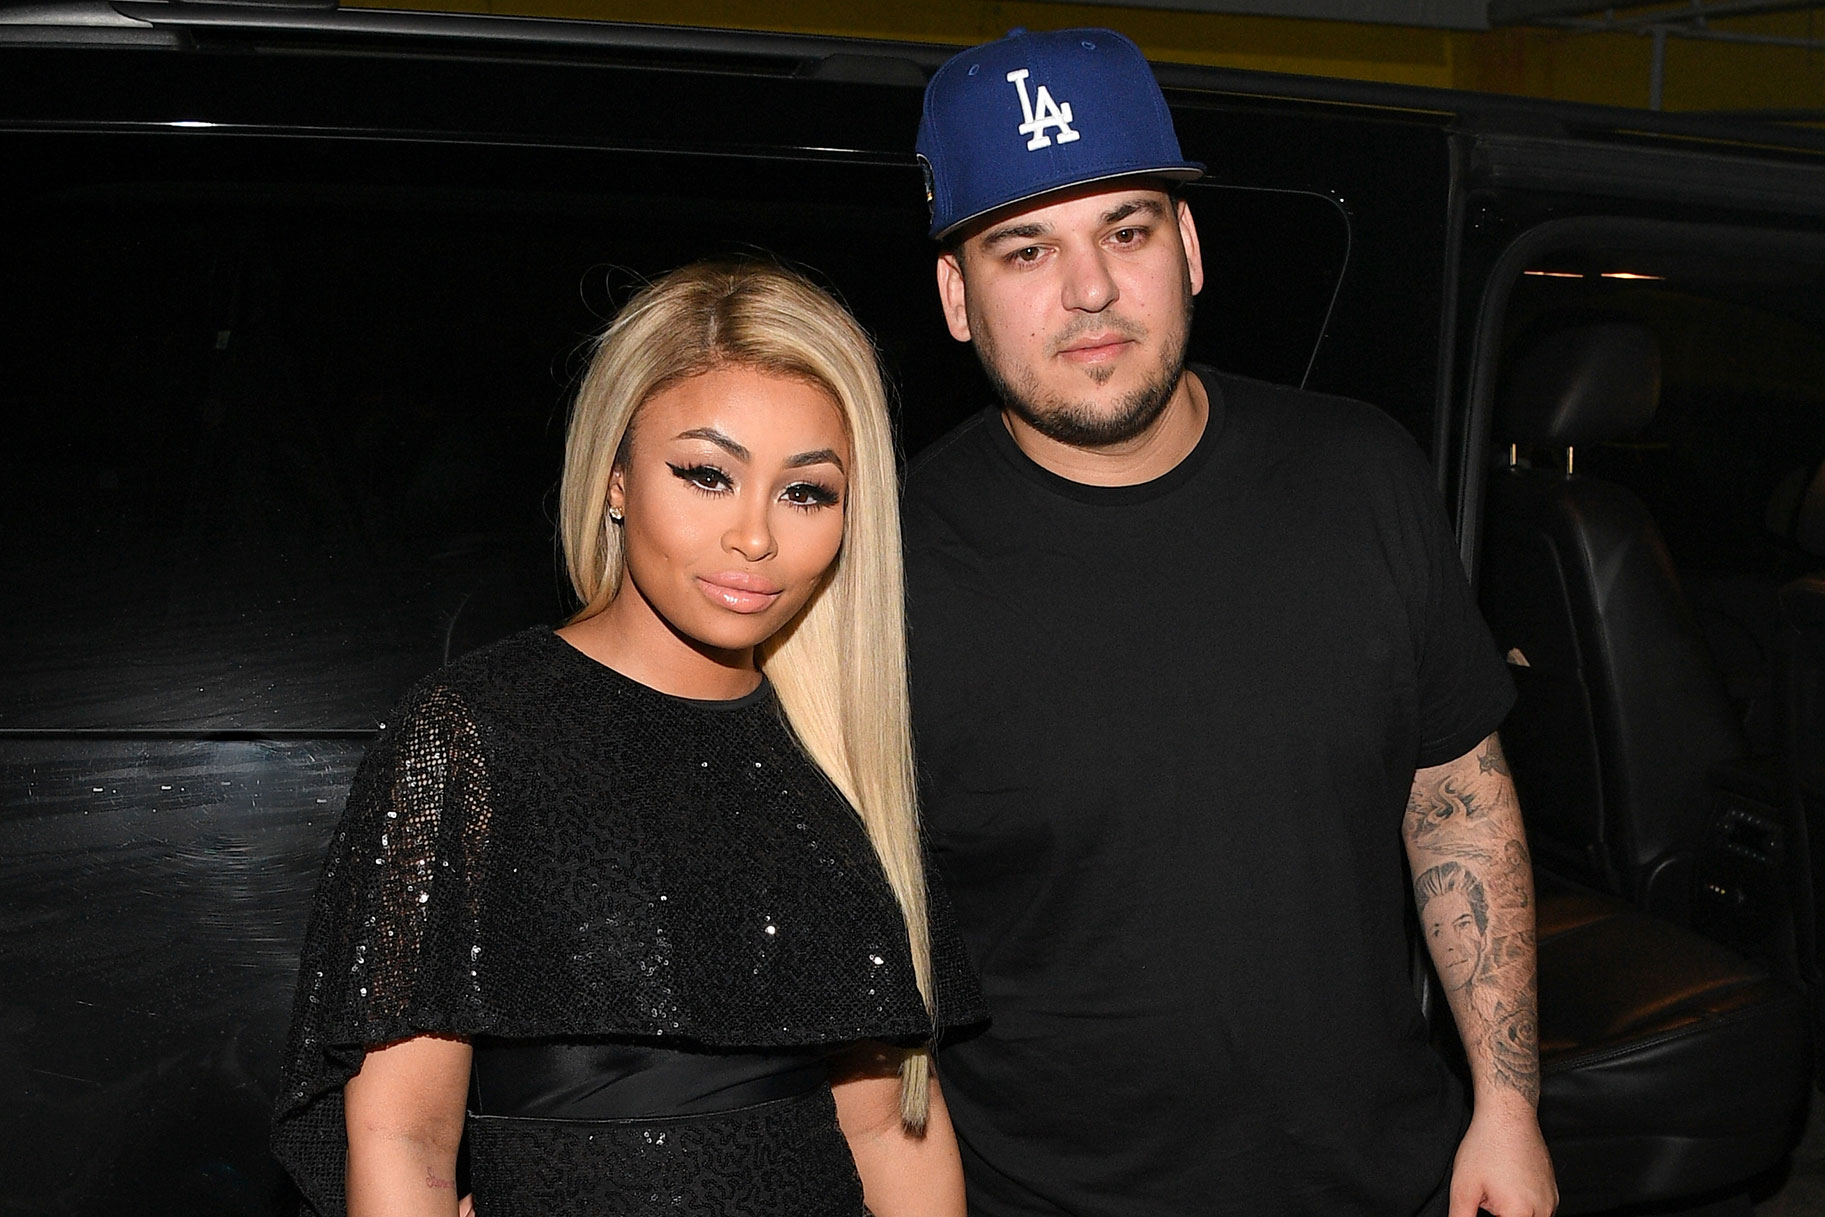 Blac Chyna Wants Judge To Throw Out Rob Kardashian's Lawsuit Alleging Assault And Battery